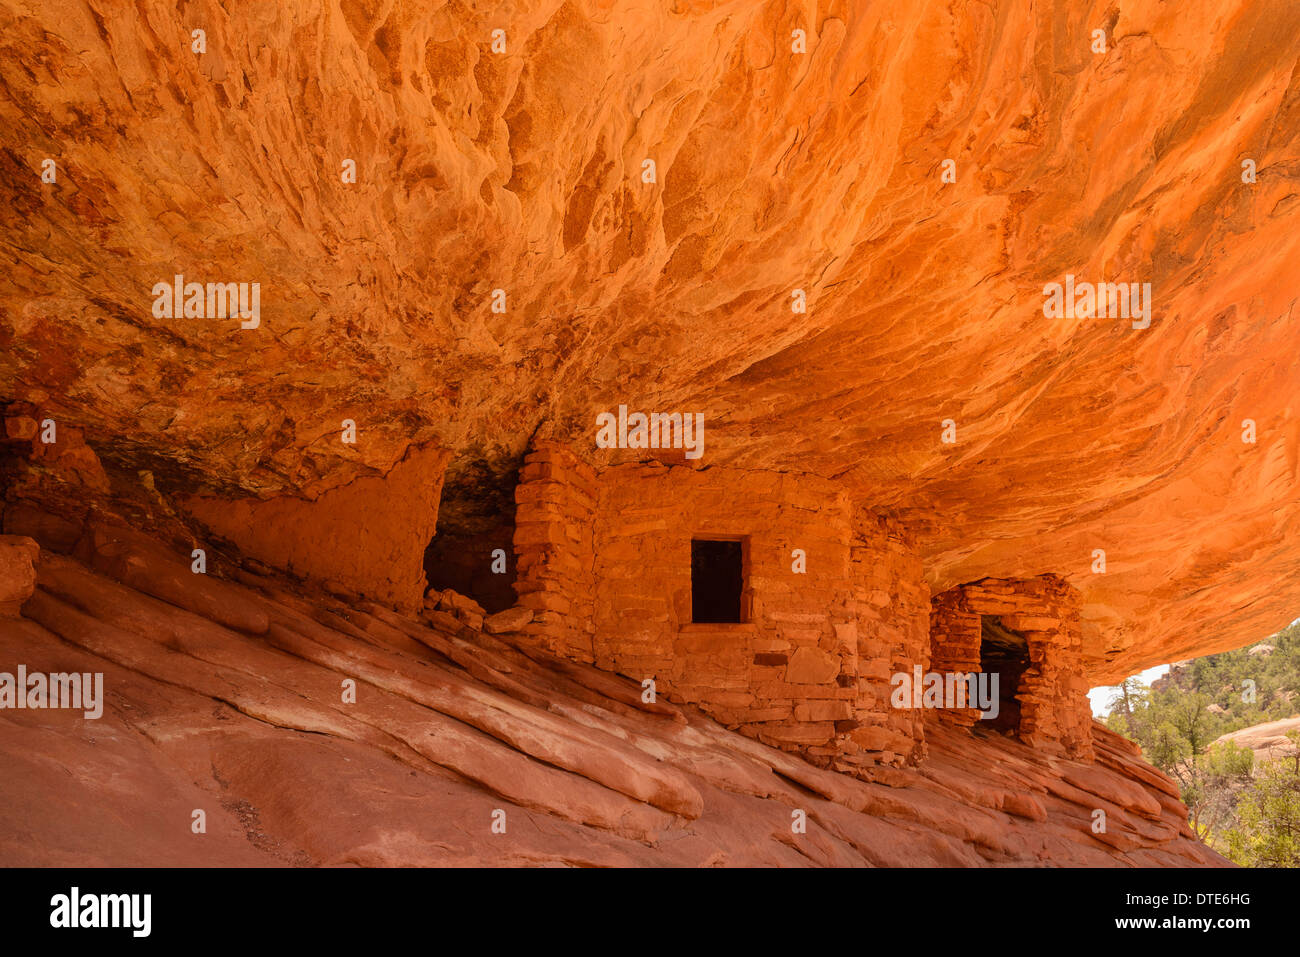 Ancient Indian Granary, known as 'House on Fire', Mule Canyon, Cedar Mesa, Utah, USA - Stock Image